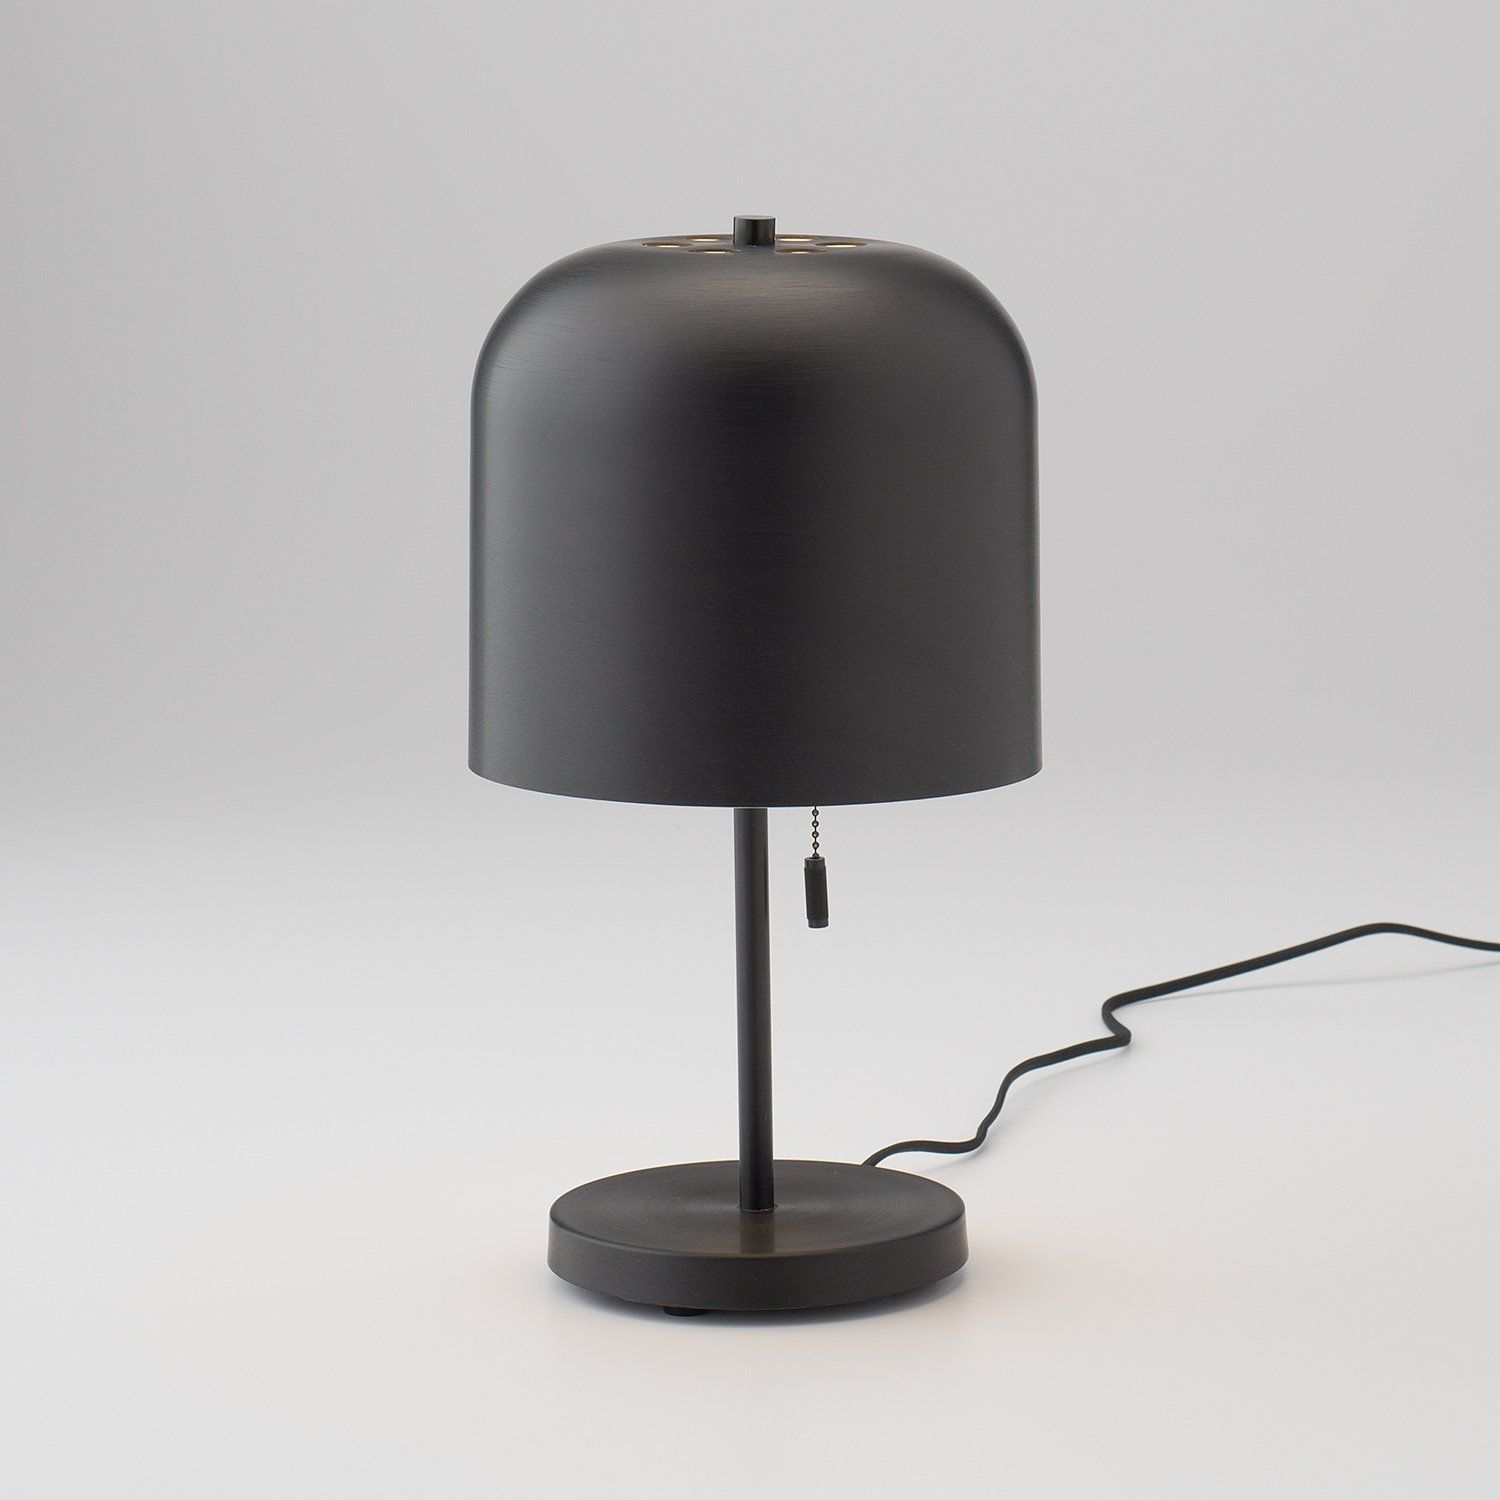 donna table lamp black anodized products black table lamps rh pinterest com